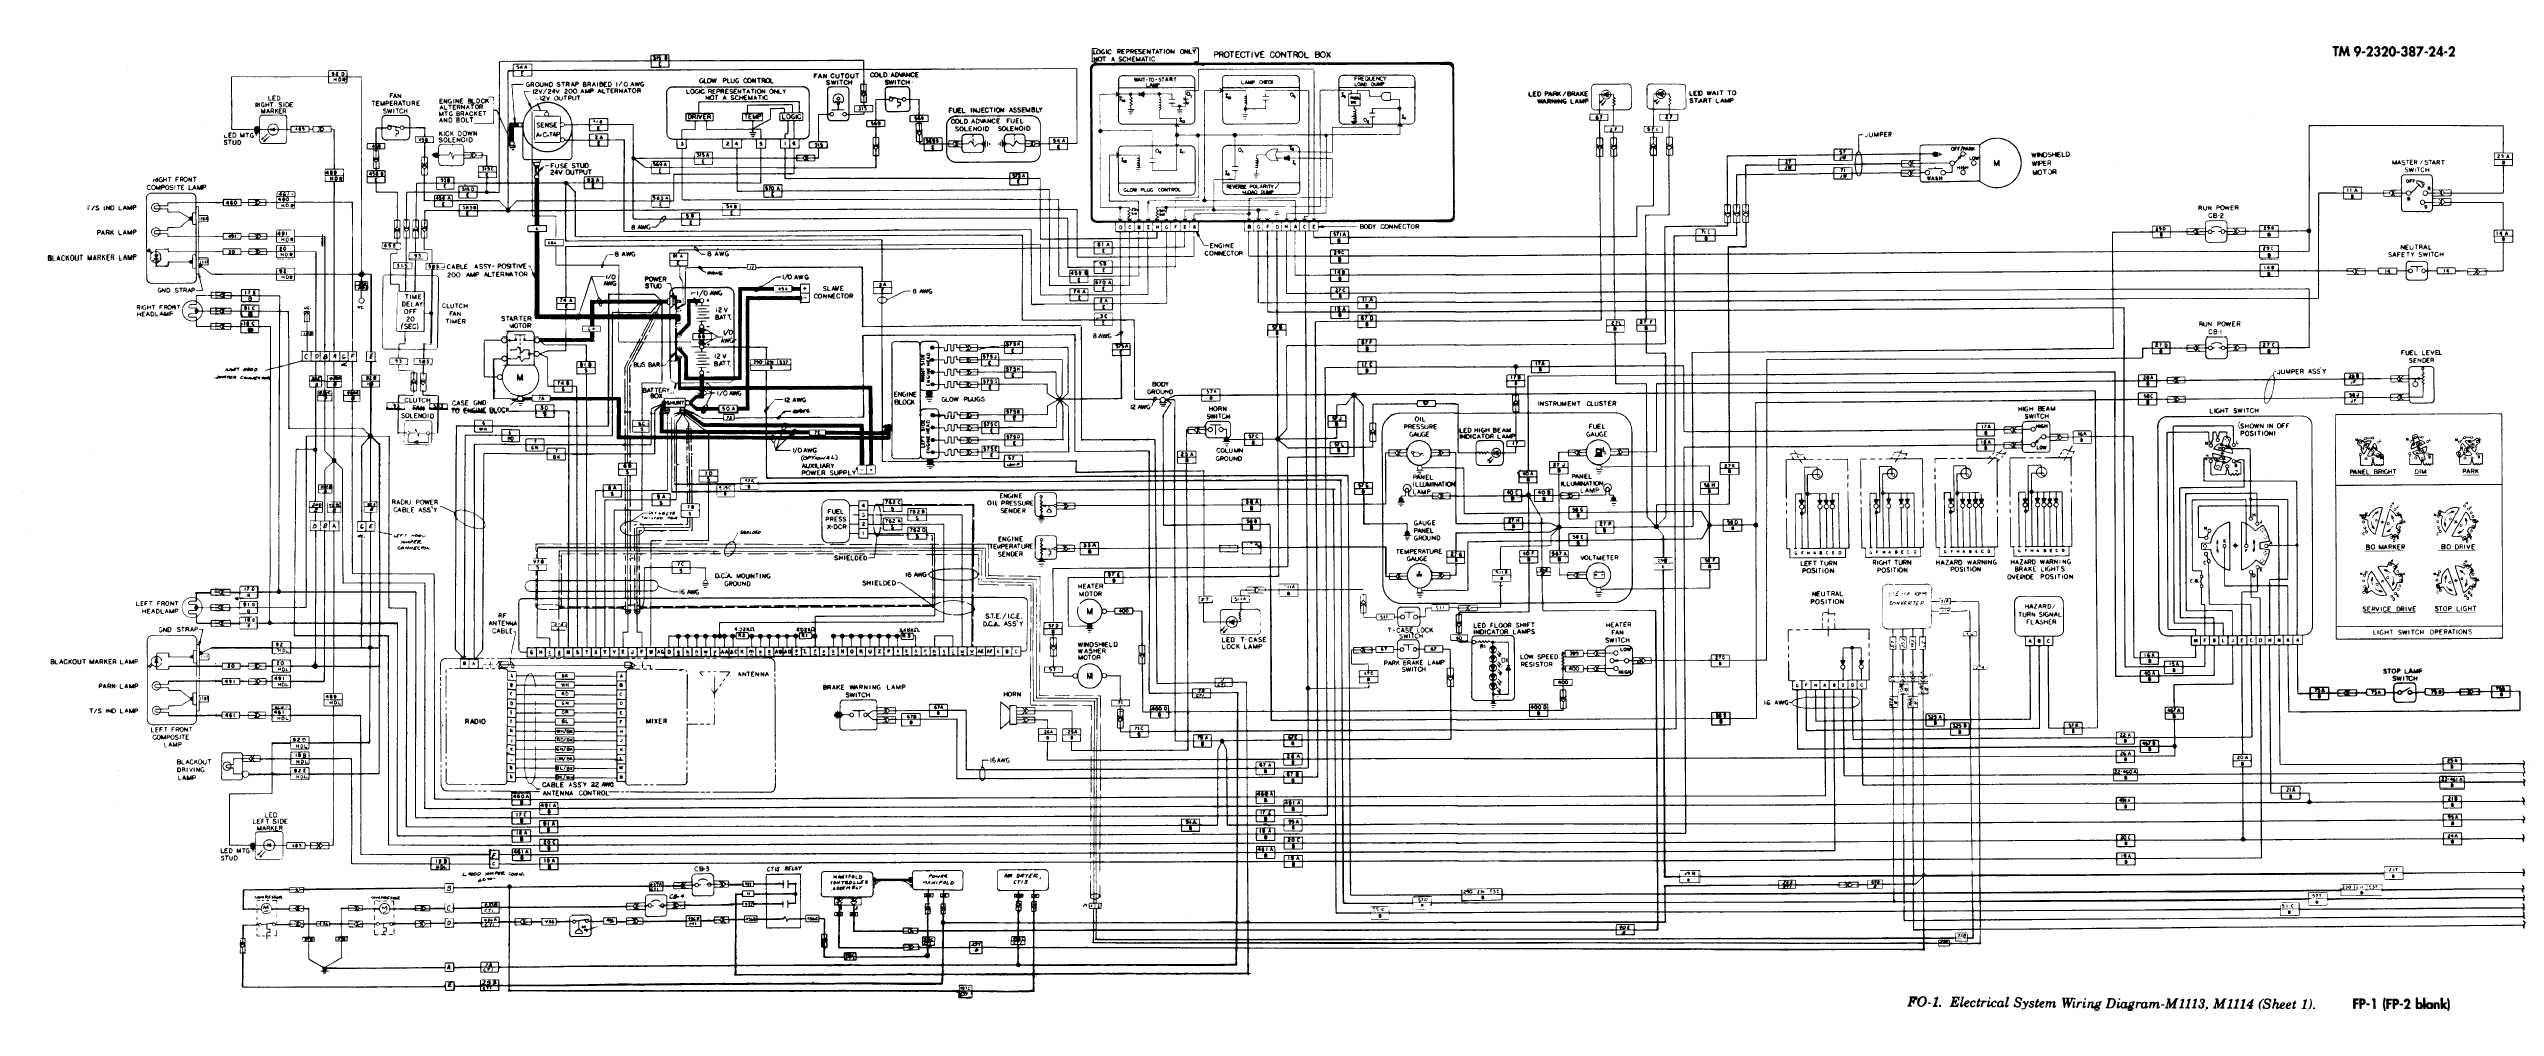 humvee wiring diagram wiring diagrams show M998 Wiring Diagram 4l80 e conversion g503 military